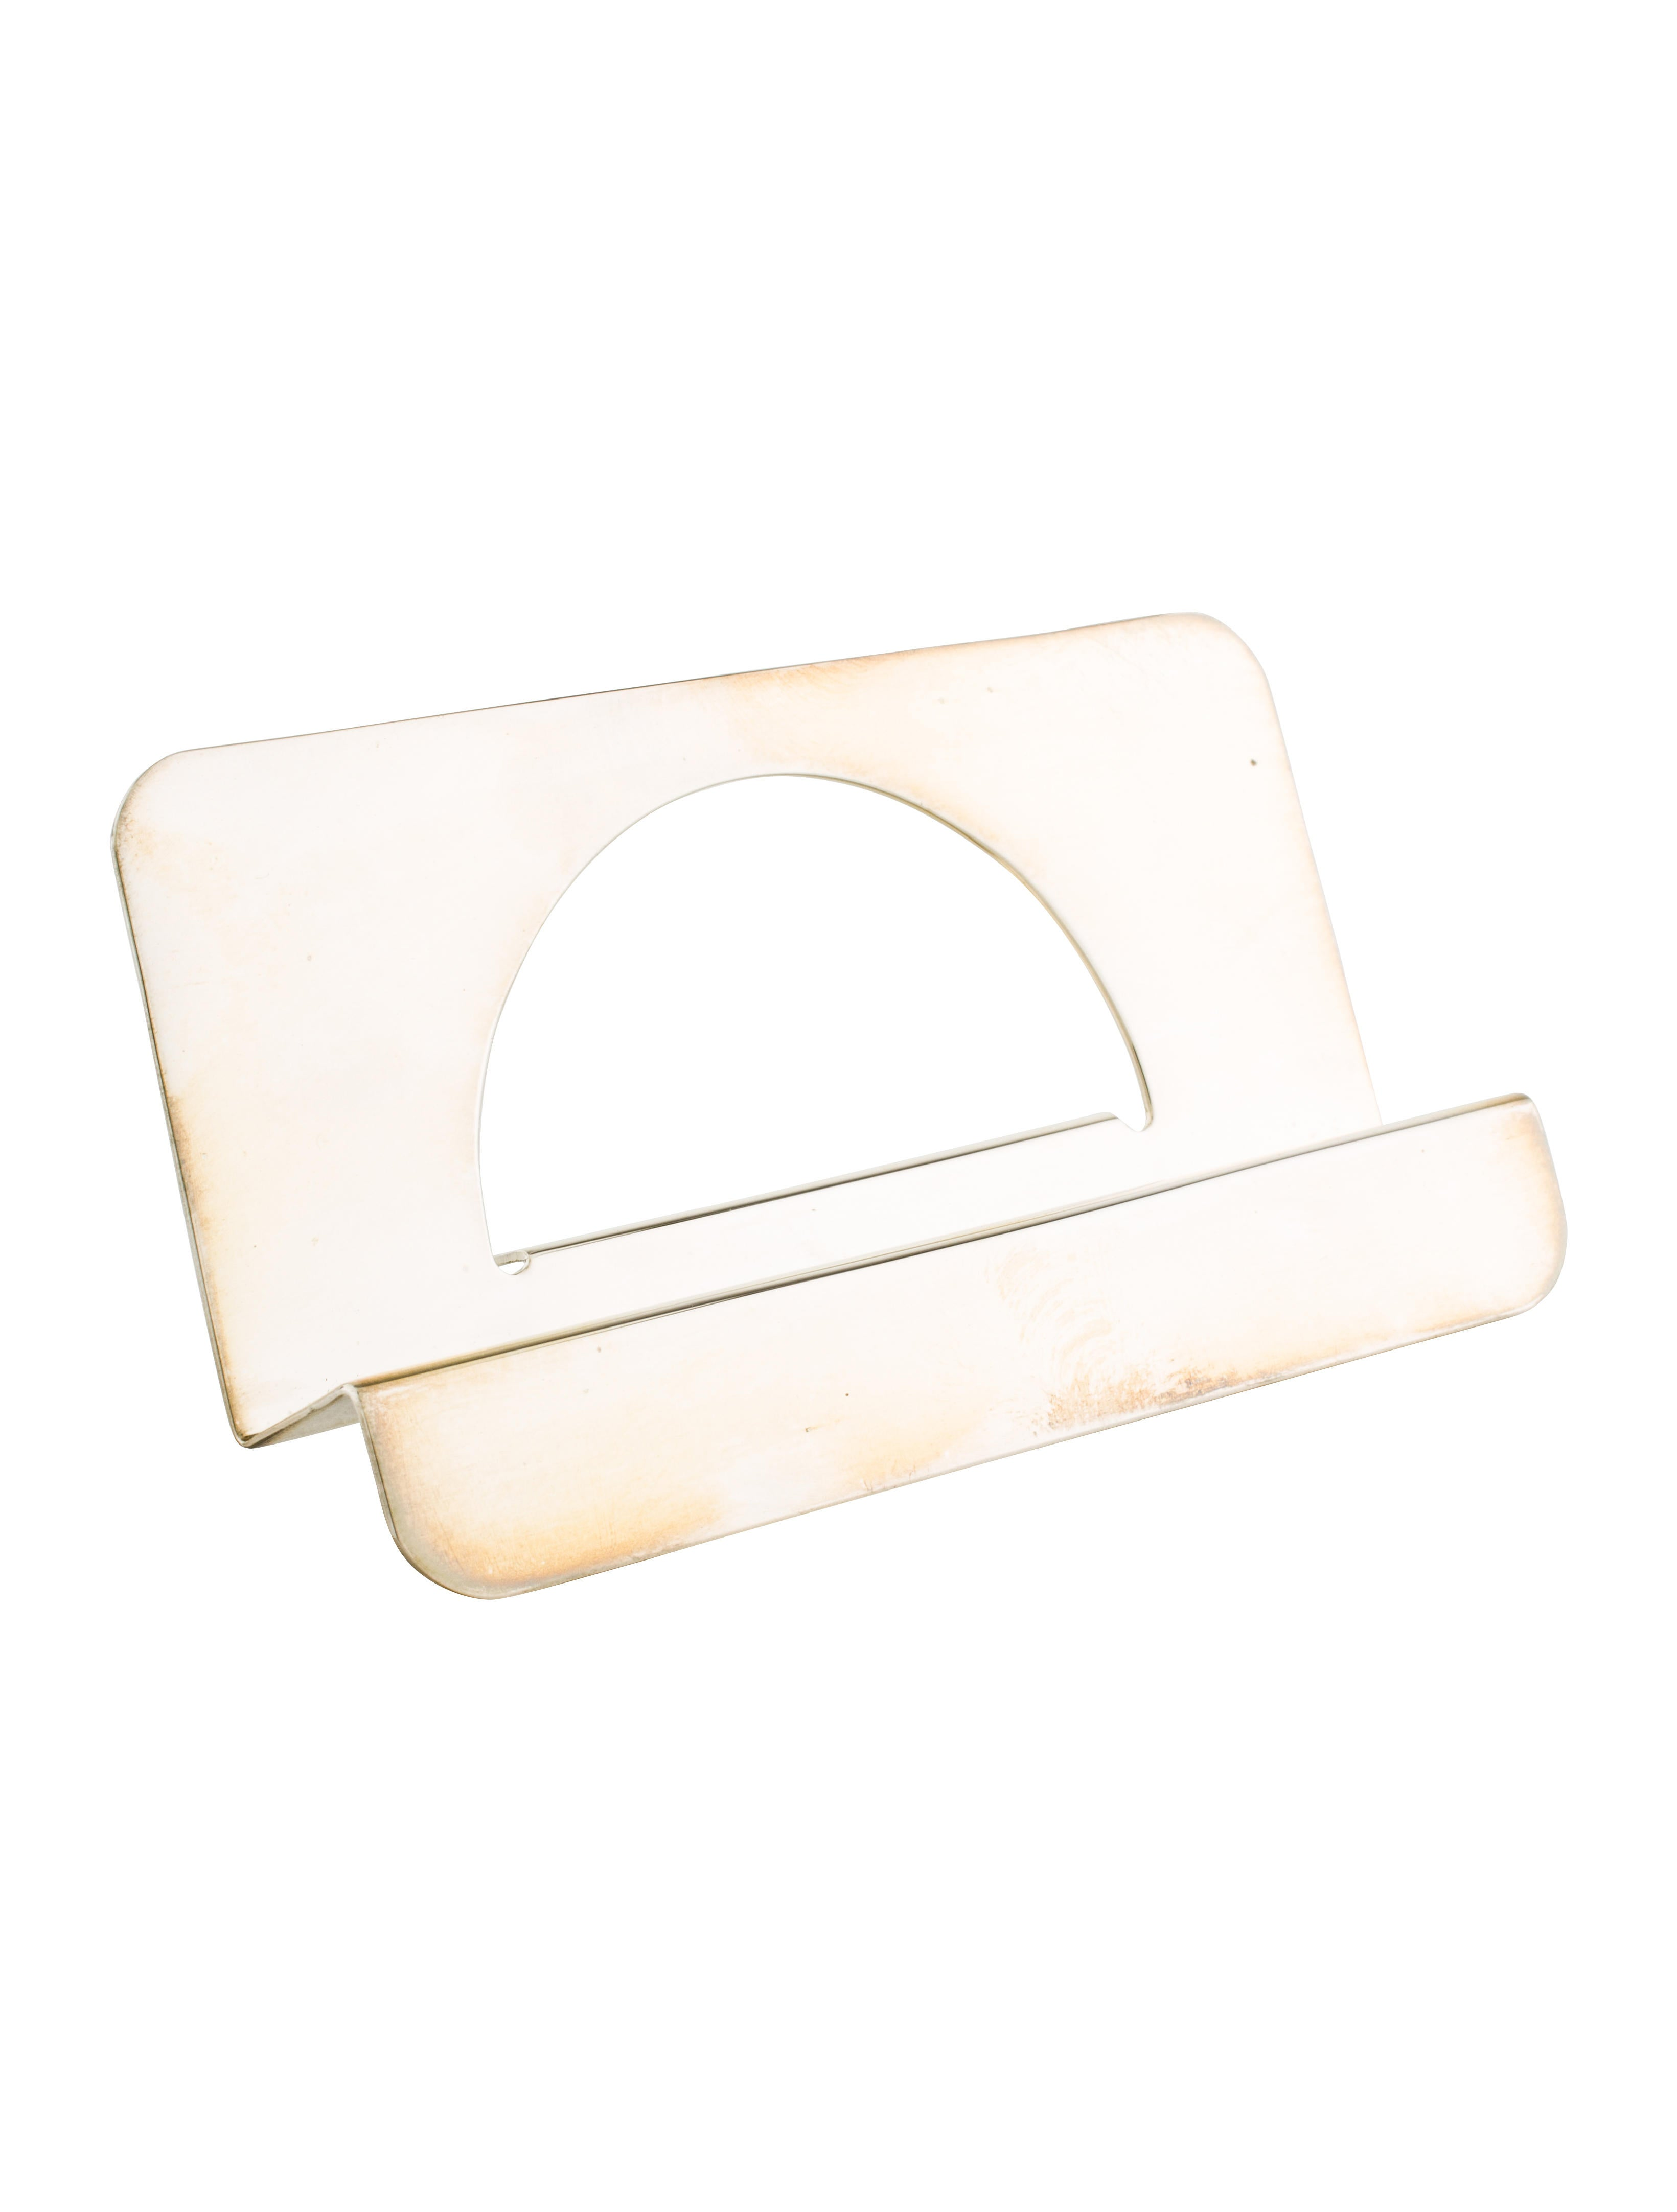 Tiffany co 925 business card holder decor and for Tiffany and co business card holder